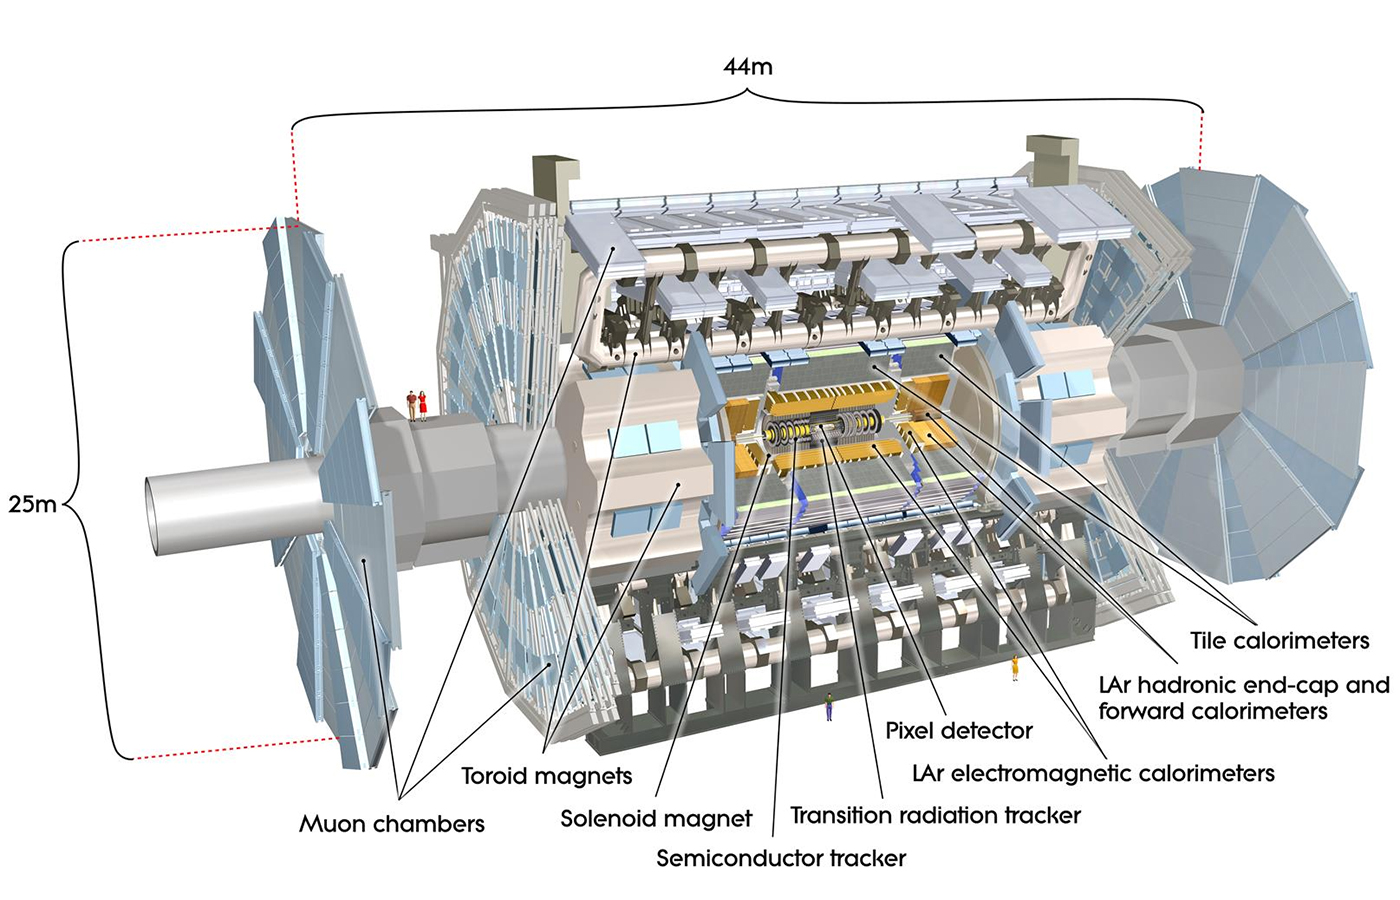 ATLAS Detector at the LHC